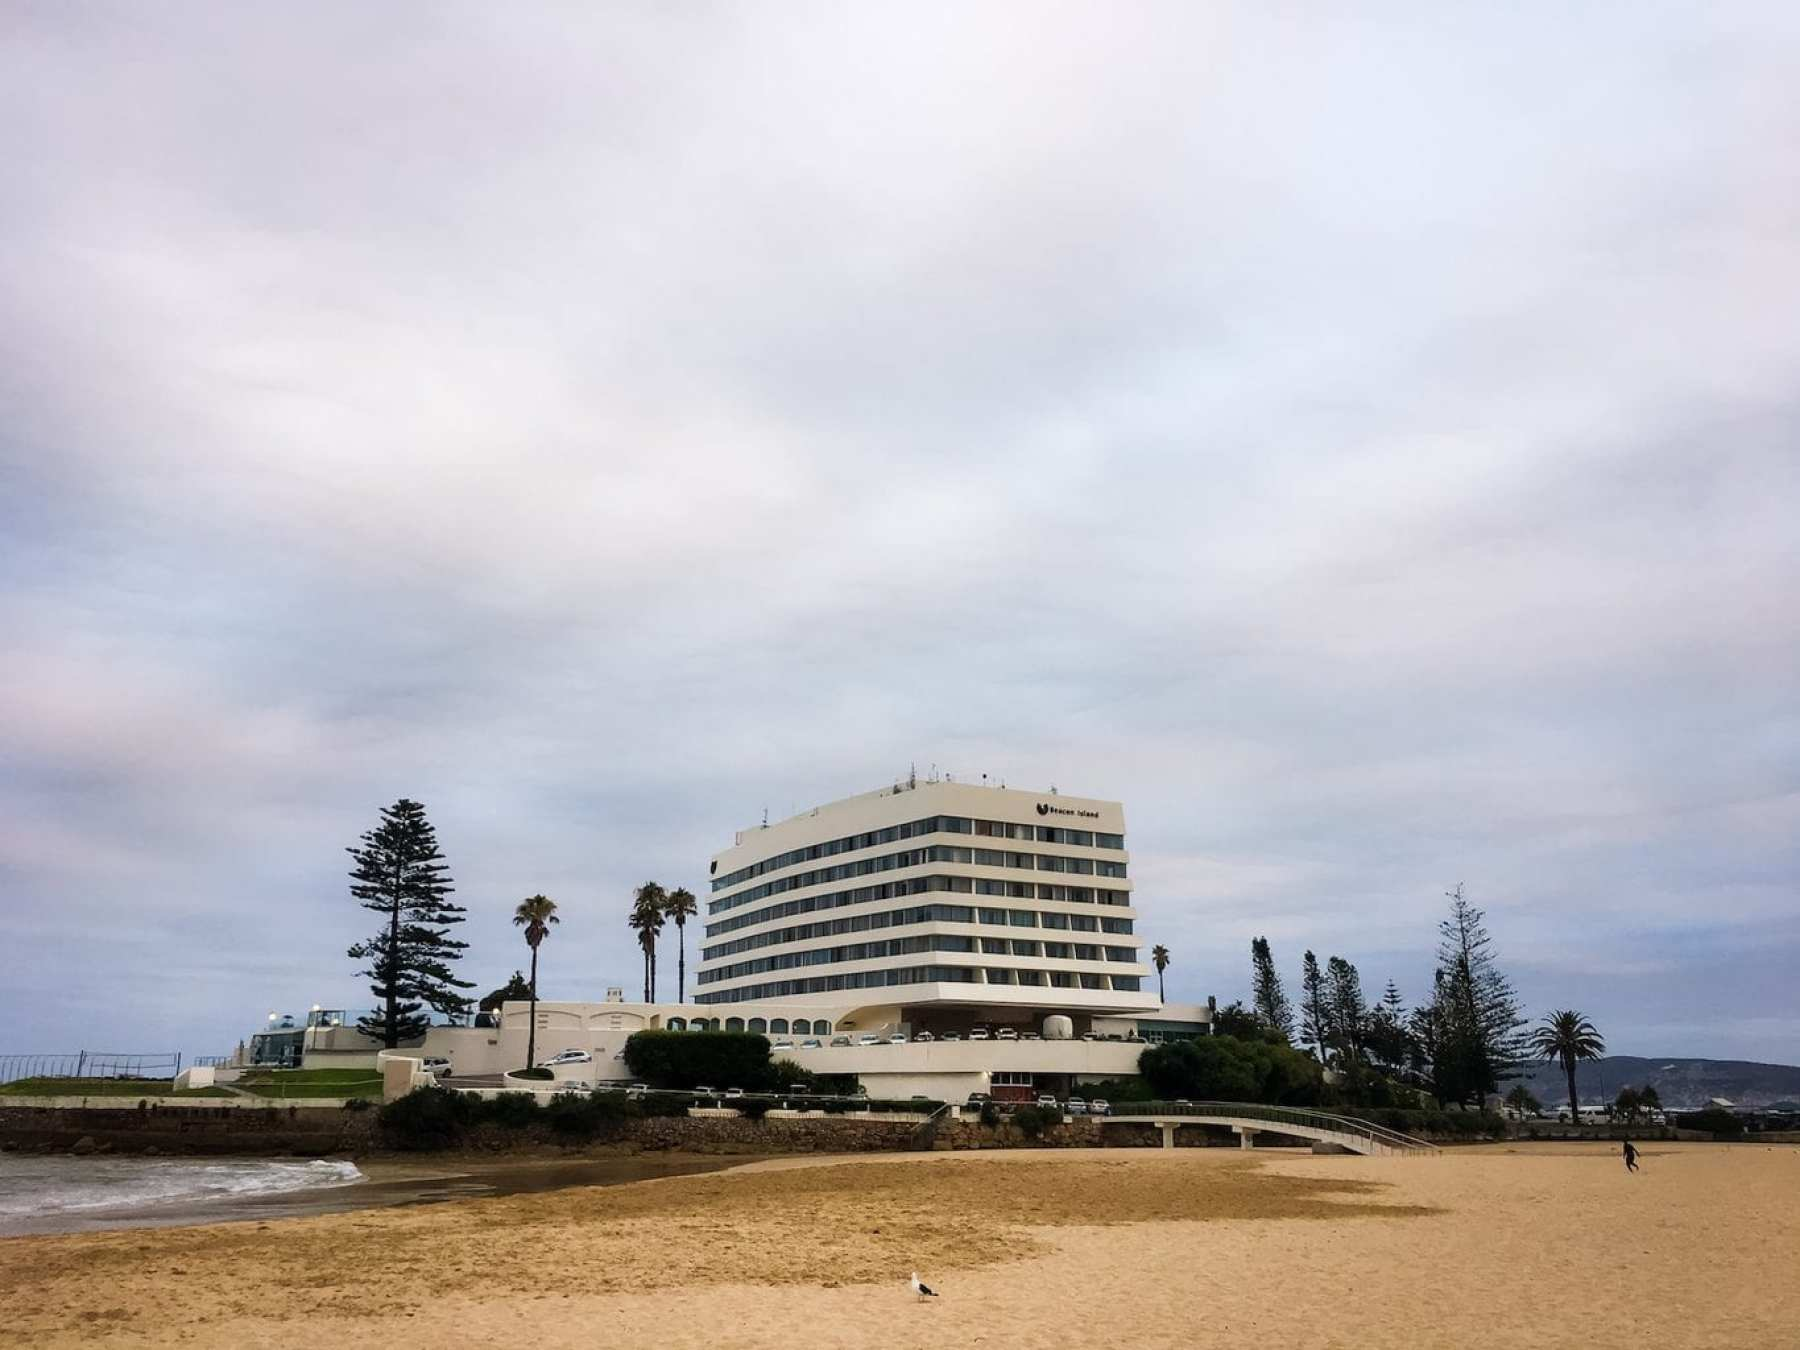 The famous Beacon Isle Hotel in Plettenberg Bay